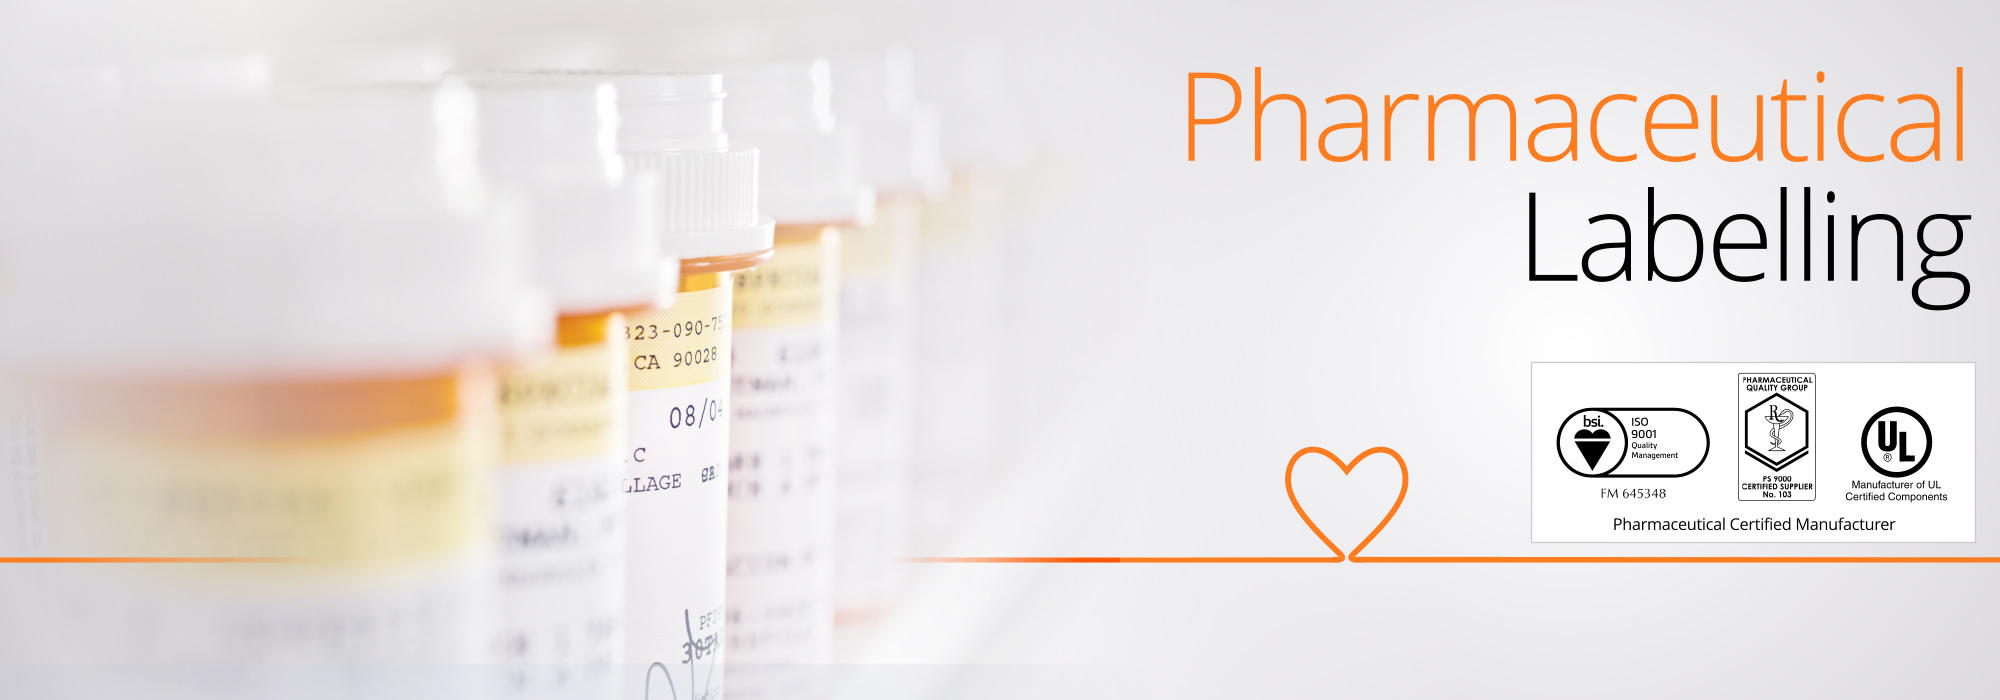 pharmaceutical labelling